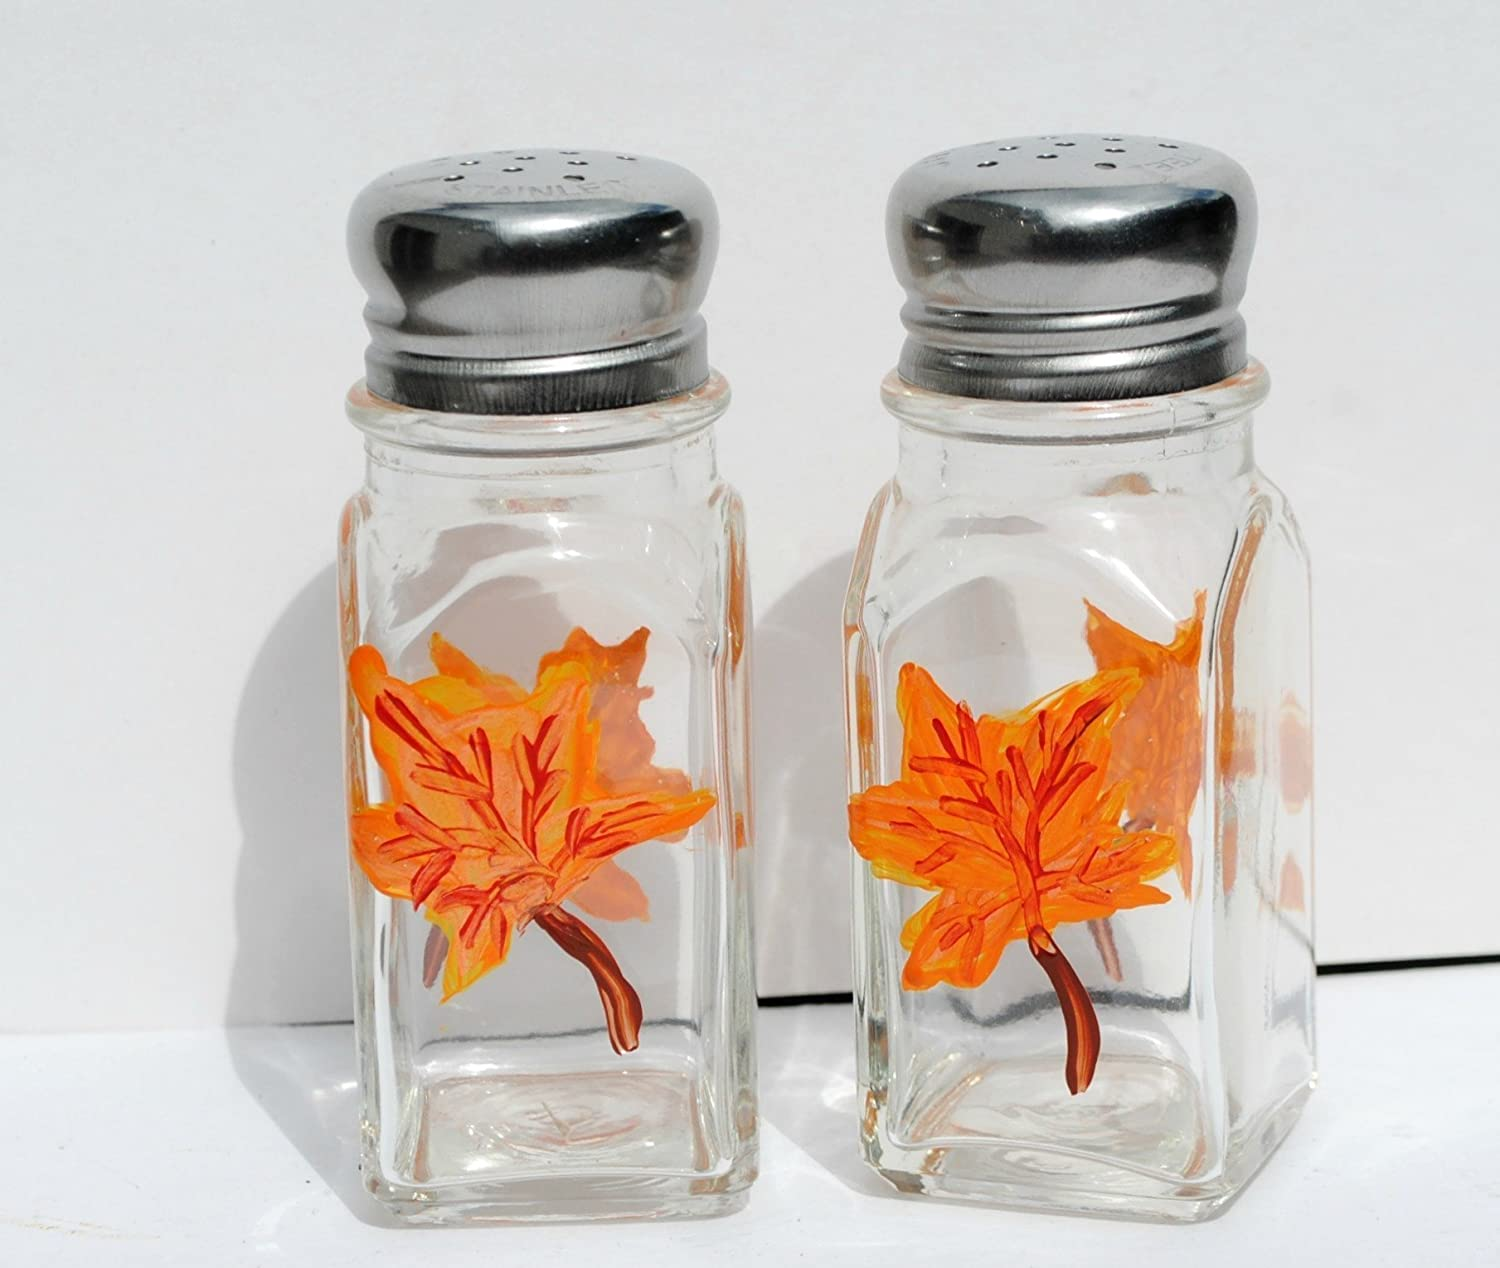 Autumn Orange Maple Leaf Fall Glass Salt & Pepper Shakers Set Hand Painted